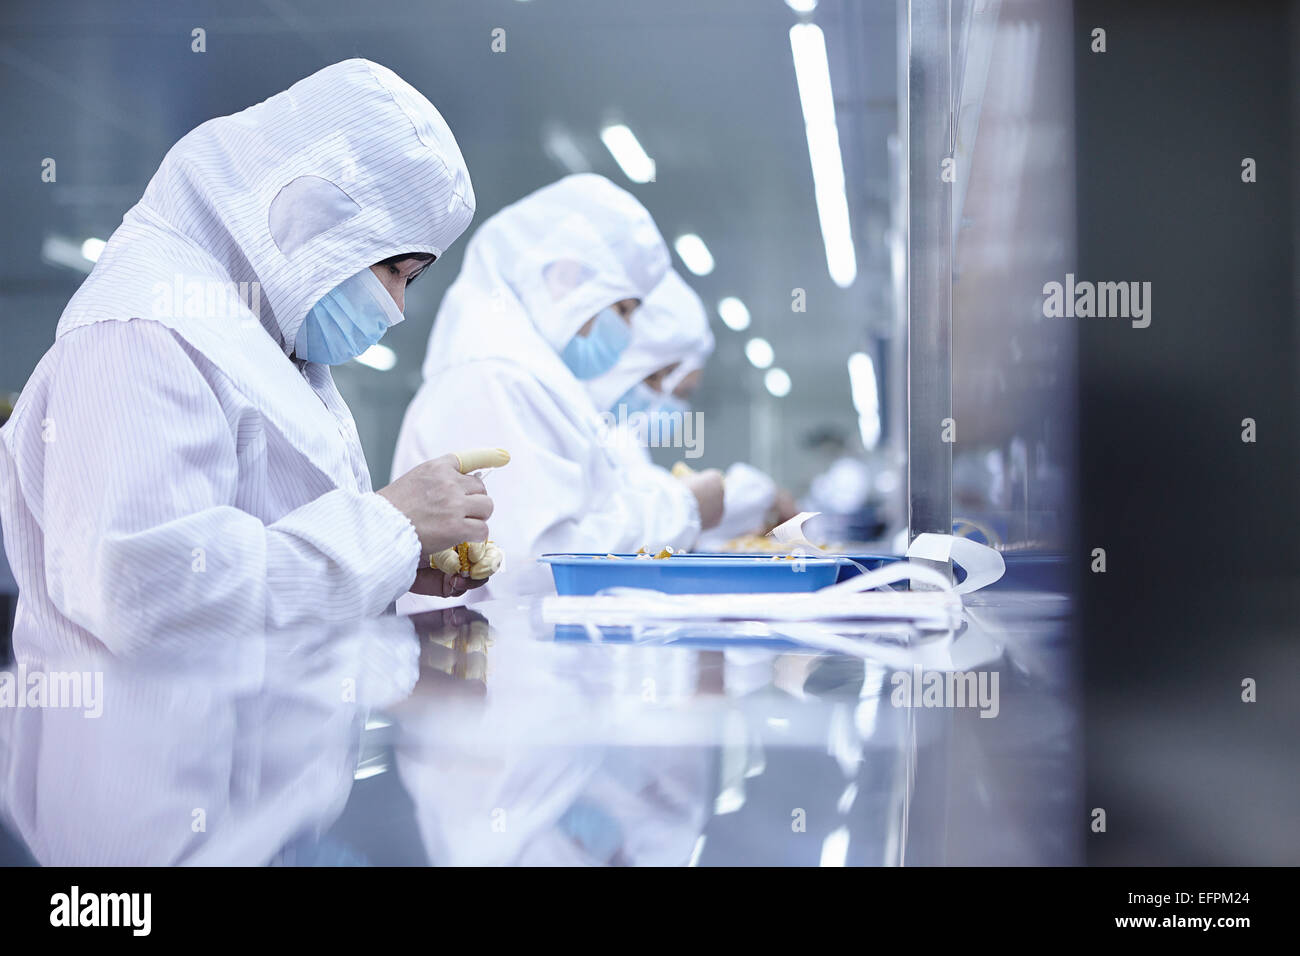 Workers testing ecigarettes in factory - Stock Image